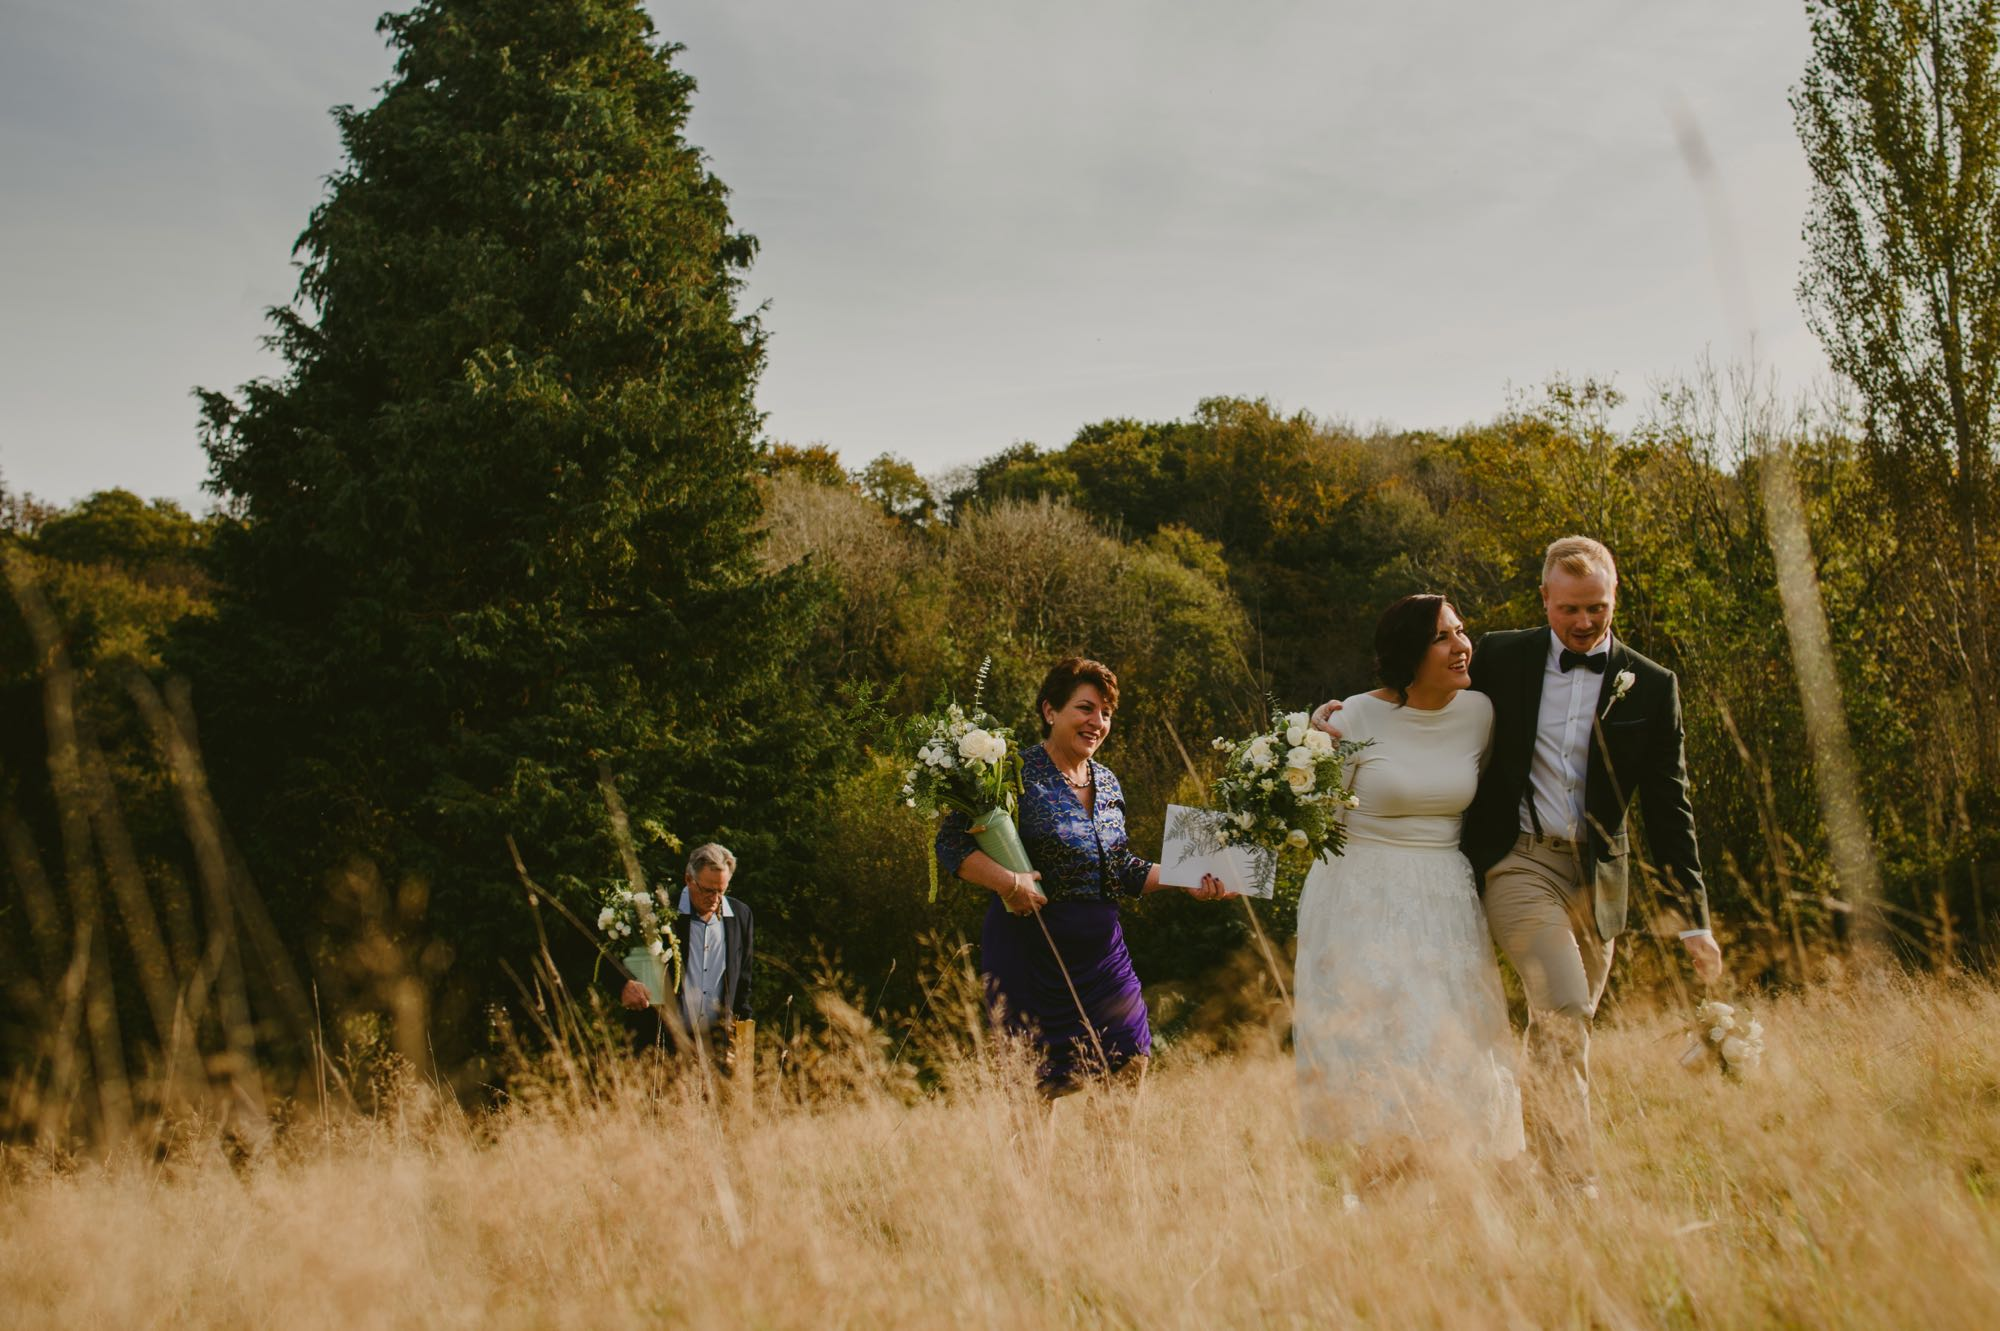 This photo is taken in the meadow with a wedding party of 4 people making their way up a slope from the Lake Arbour. The grass in the meadow is long, parched and golden. There are many trees in the backgorund and they are showing their autumn colours. The couple are in out front walking. The groom is on the left and the bride is on the right. The groom has his arm around his bride's shoulders. They are facing the camera. The bride's bouquet of white flowers and green foliage is in her right hand. The bride is wearing a knee-length, full-skirted, a-line dress. She has dark hair which she is wearing up. The groom is wearing chinos, brown brogues, a dark jacket a pale blue shirt and a dark bow-tie. He has light brown hair. Following behind the couple are the bride's parents. Her mum is wearing a purple pencil skirt with a v-necked silk blouse. Her dad is behind her mum ans is wearing a dark jacket and open necked blue shirt. Both are carrying a large vase of white flowers with green foliage.